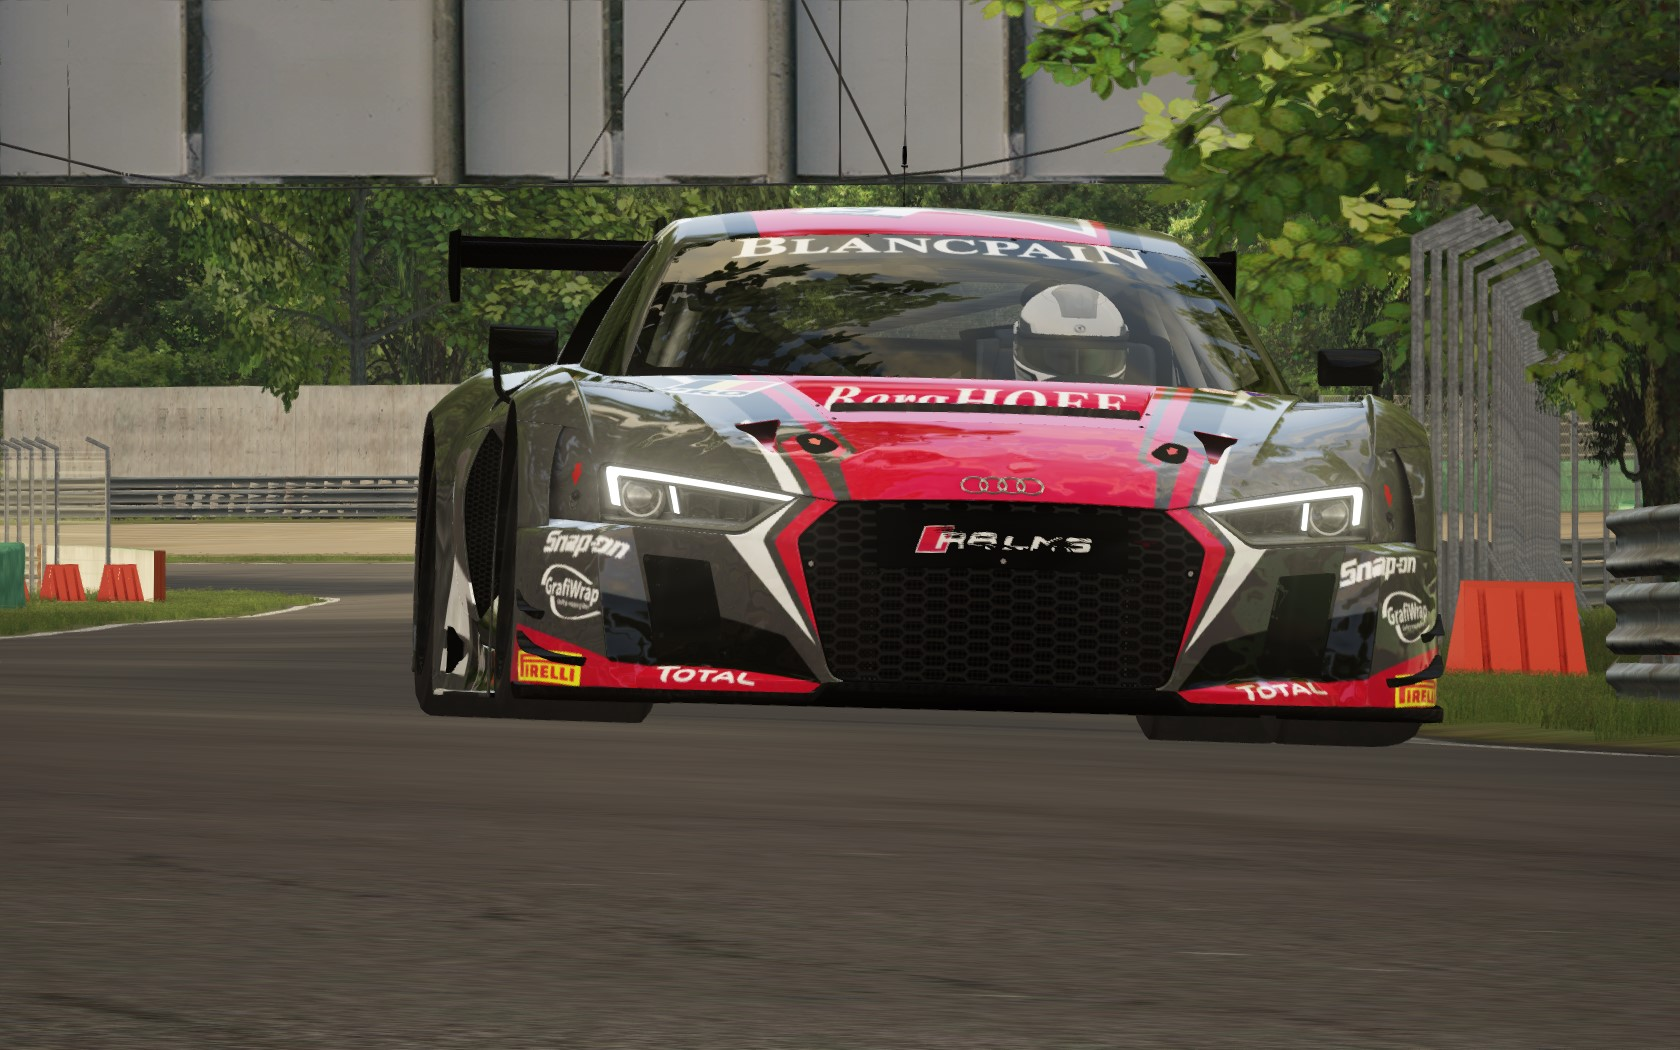 Screenshot_ks_audi_r8_lms_2016_monza_21-5-117-18-23-46.jpg